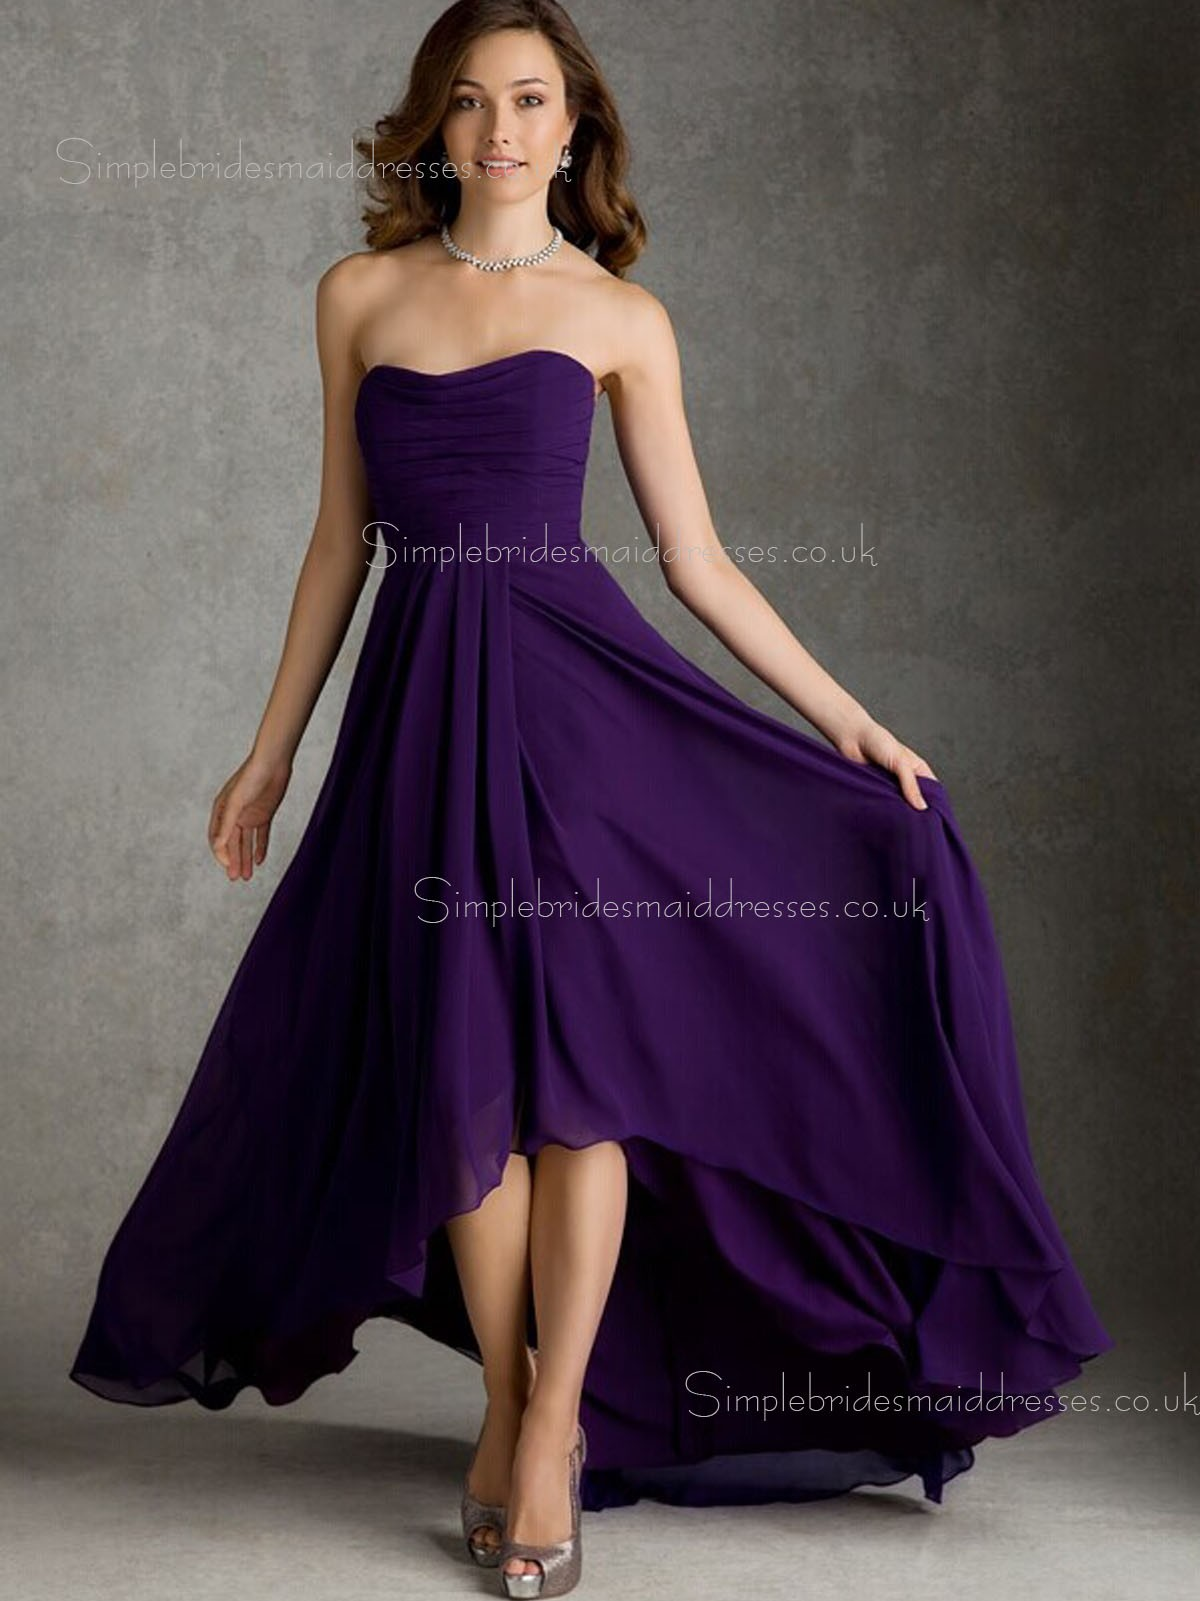 Cadbury purple bridesmaid dress vosoi purple dresses bridesmaid uk u2013 the best wedding photo blog ombrellifo Image collections